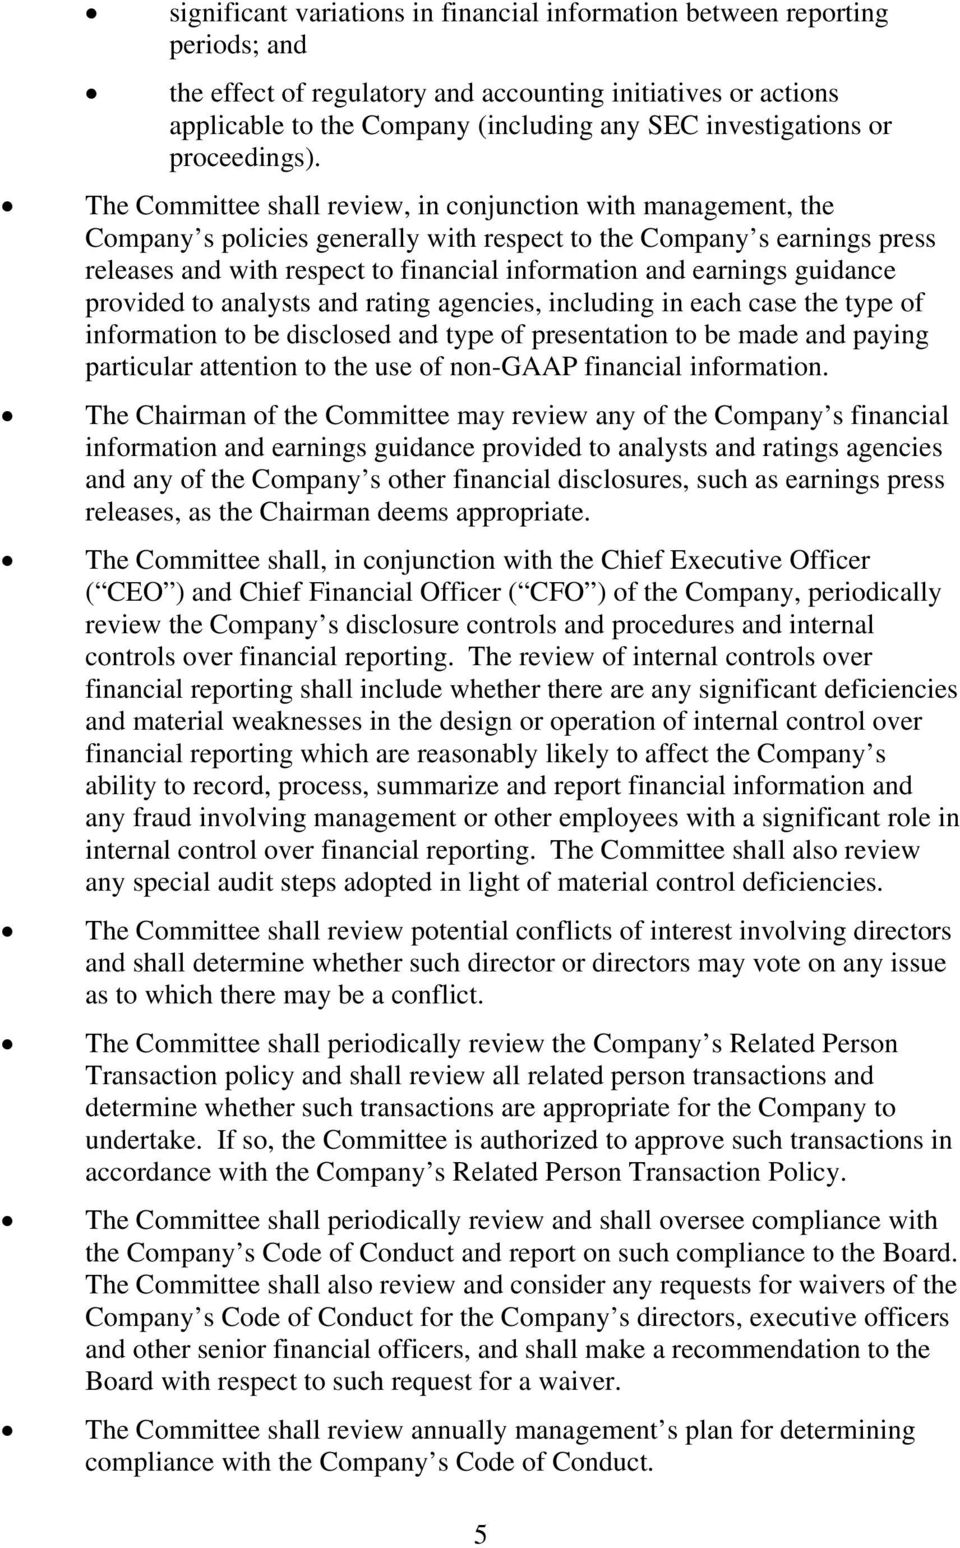 The Committee shall review, in conjunction with management, the Company s policies generally with respect to the Company s earnings press releases and with respect to financial information and